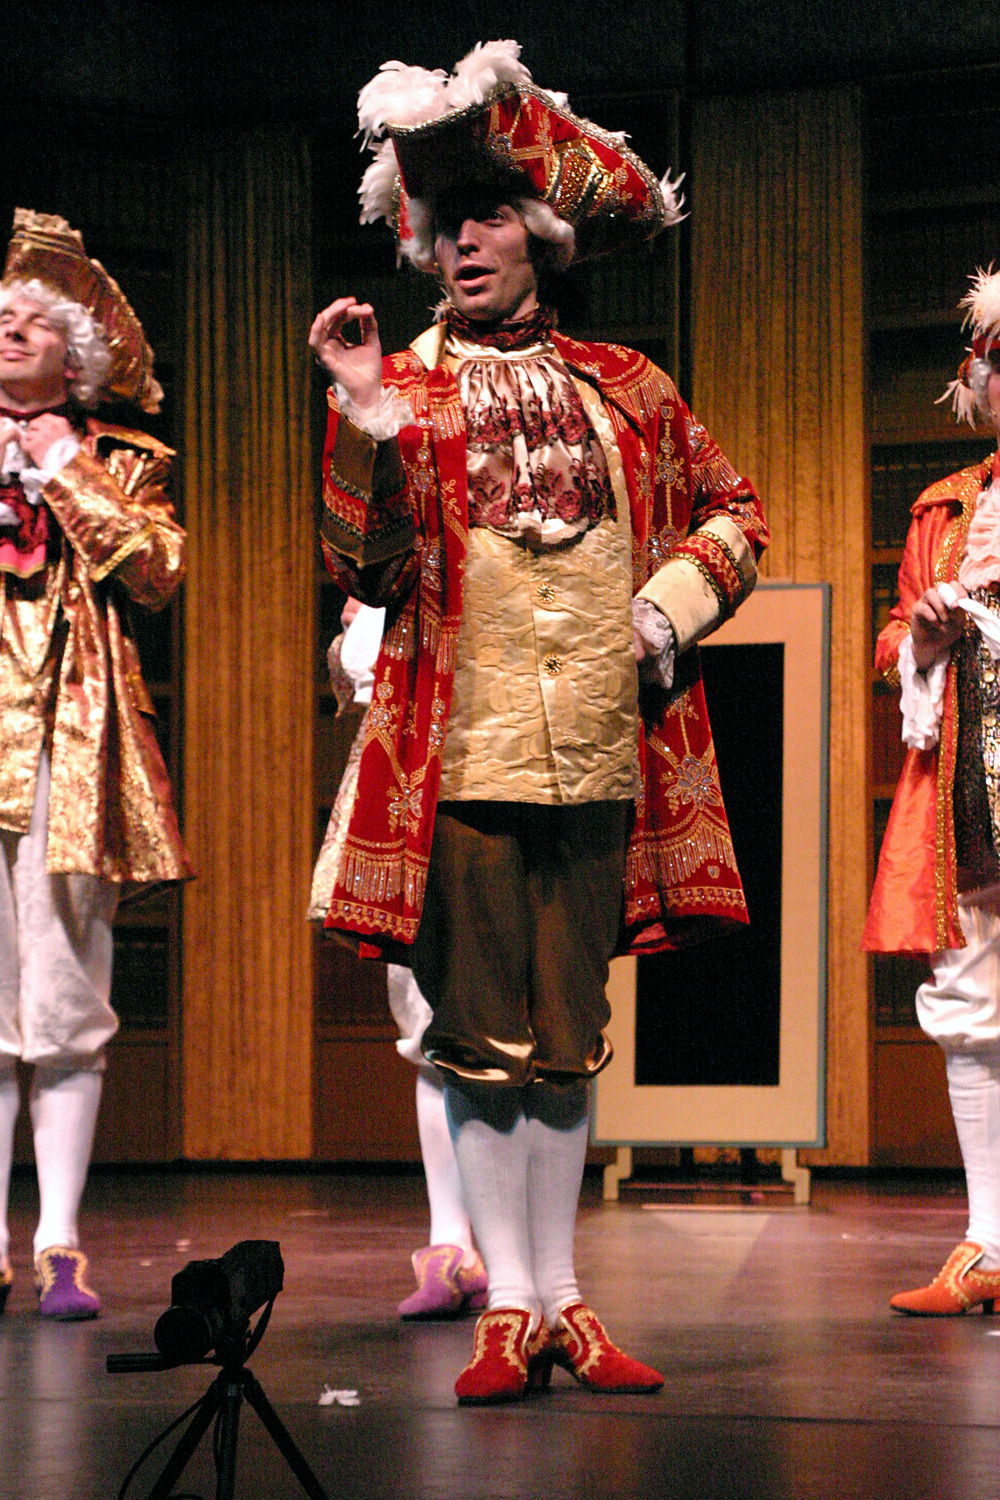 021 - The Scarlet Pimpernel 2005 - Generale.jpg